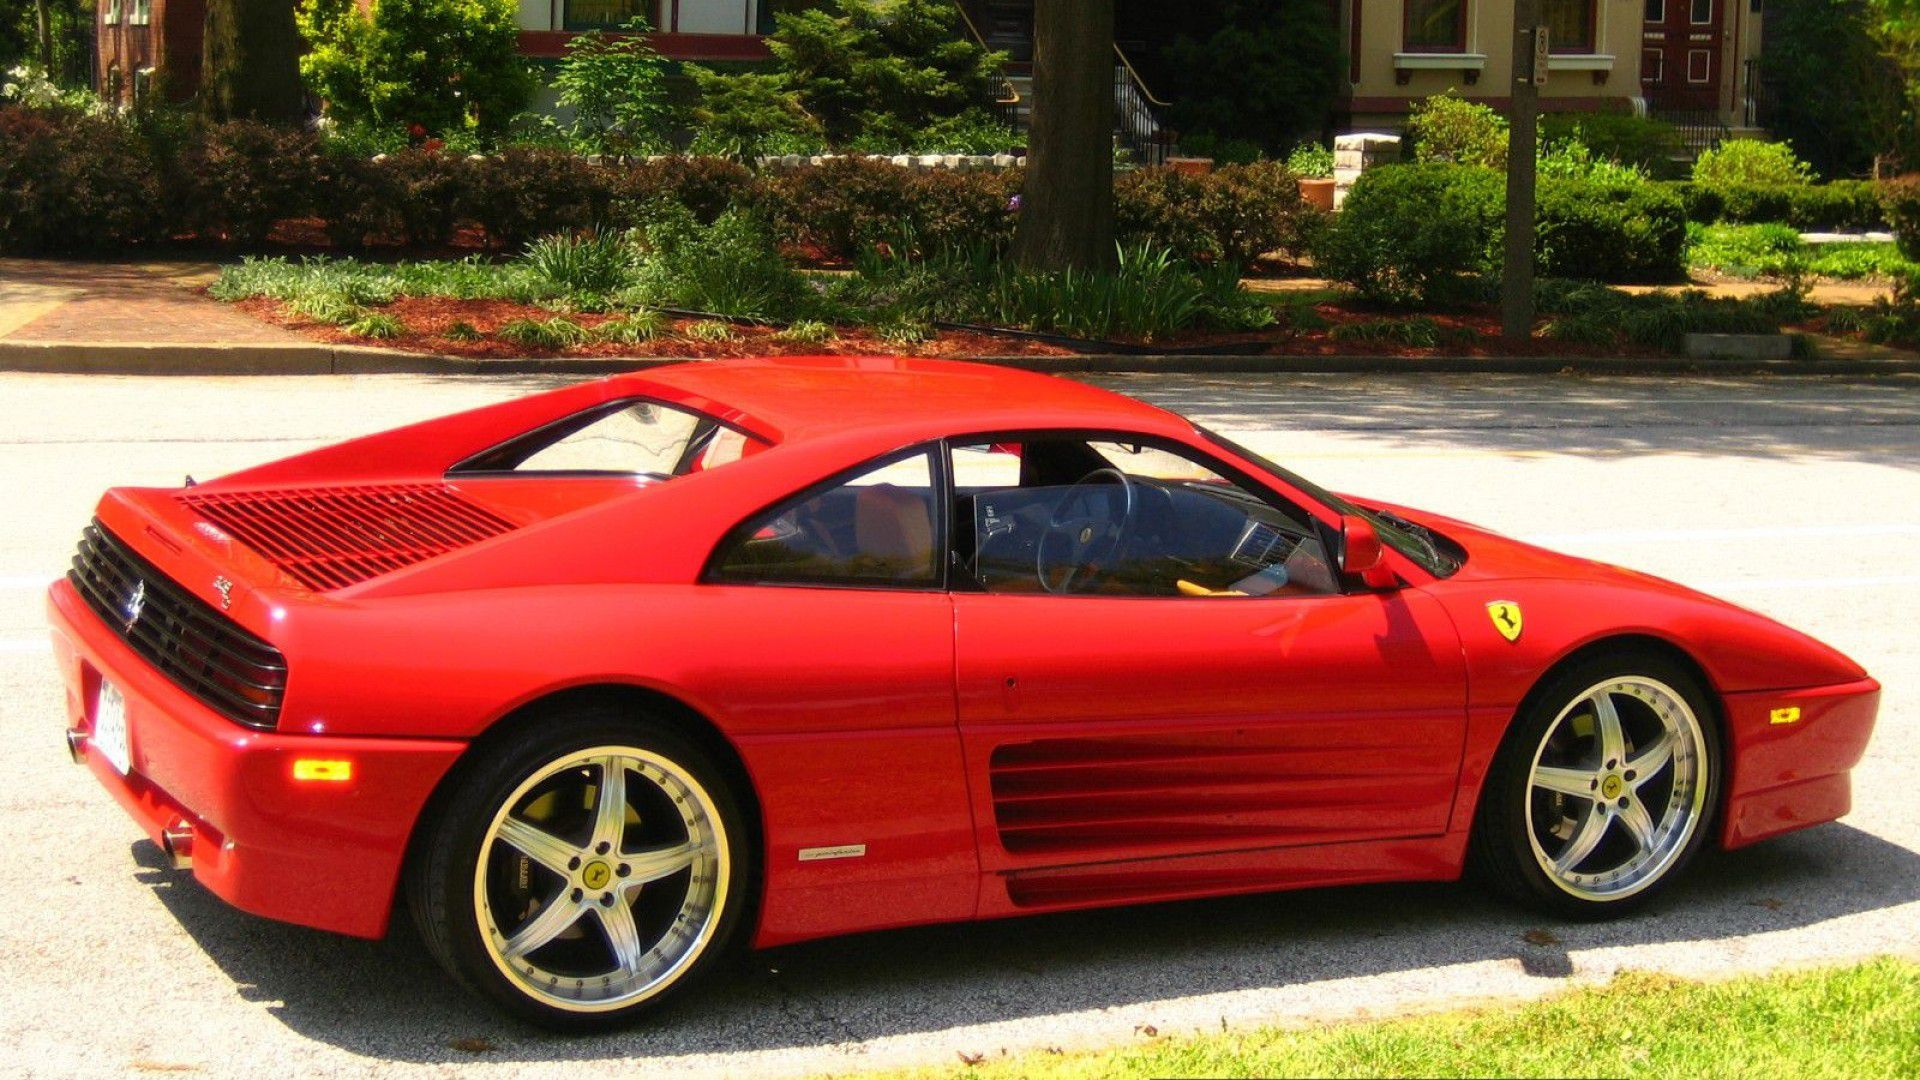 ferrari 348 pictures posters news and videos on your pursuit hobbies interests and worries. Black Bedroom Furniture Sets. Home Design Ideas